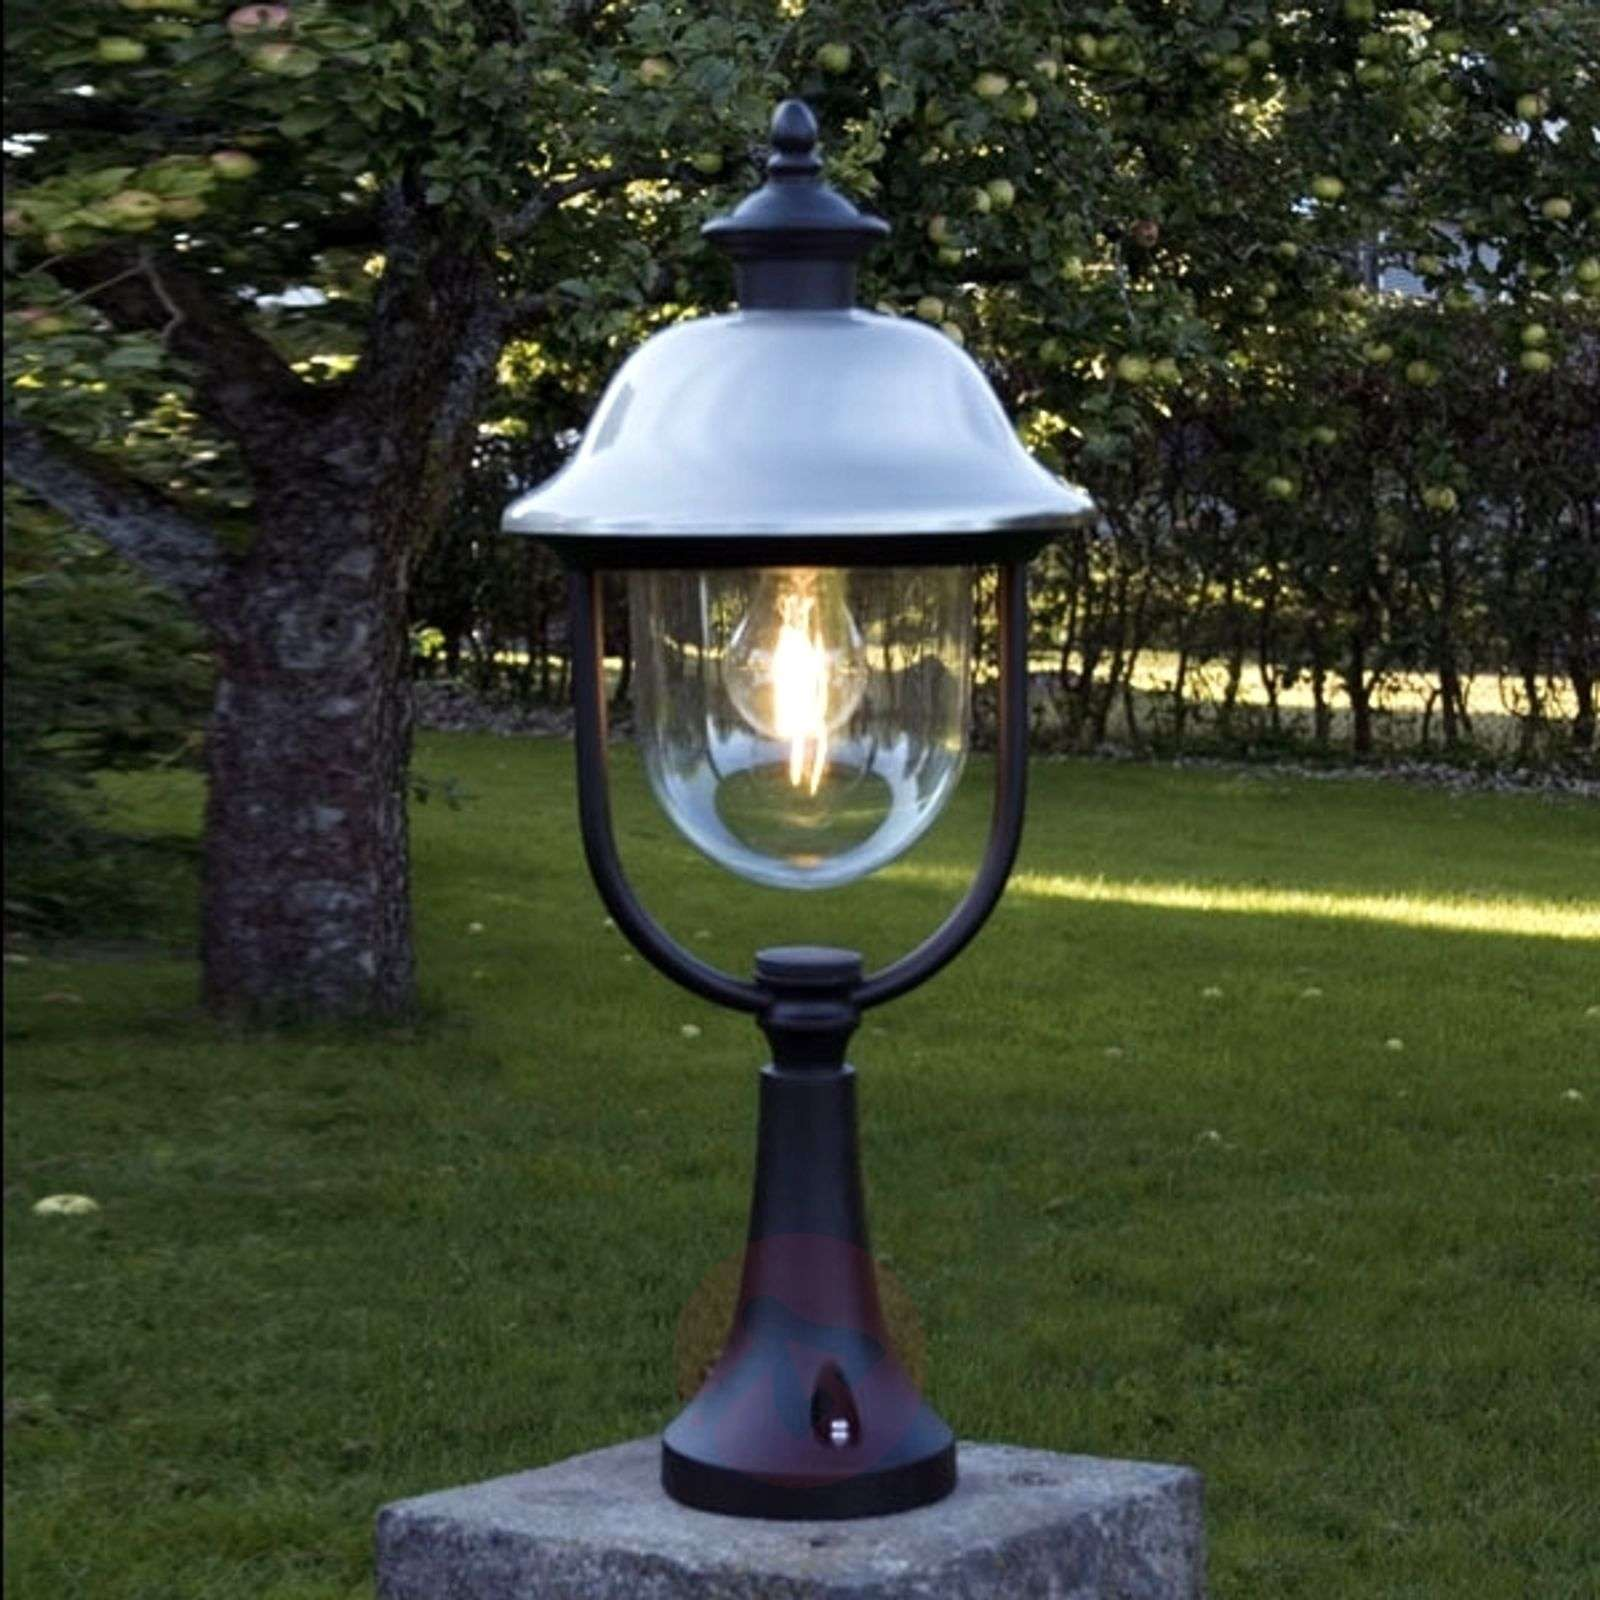 Timeless pillar light PARMA-5522142-01